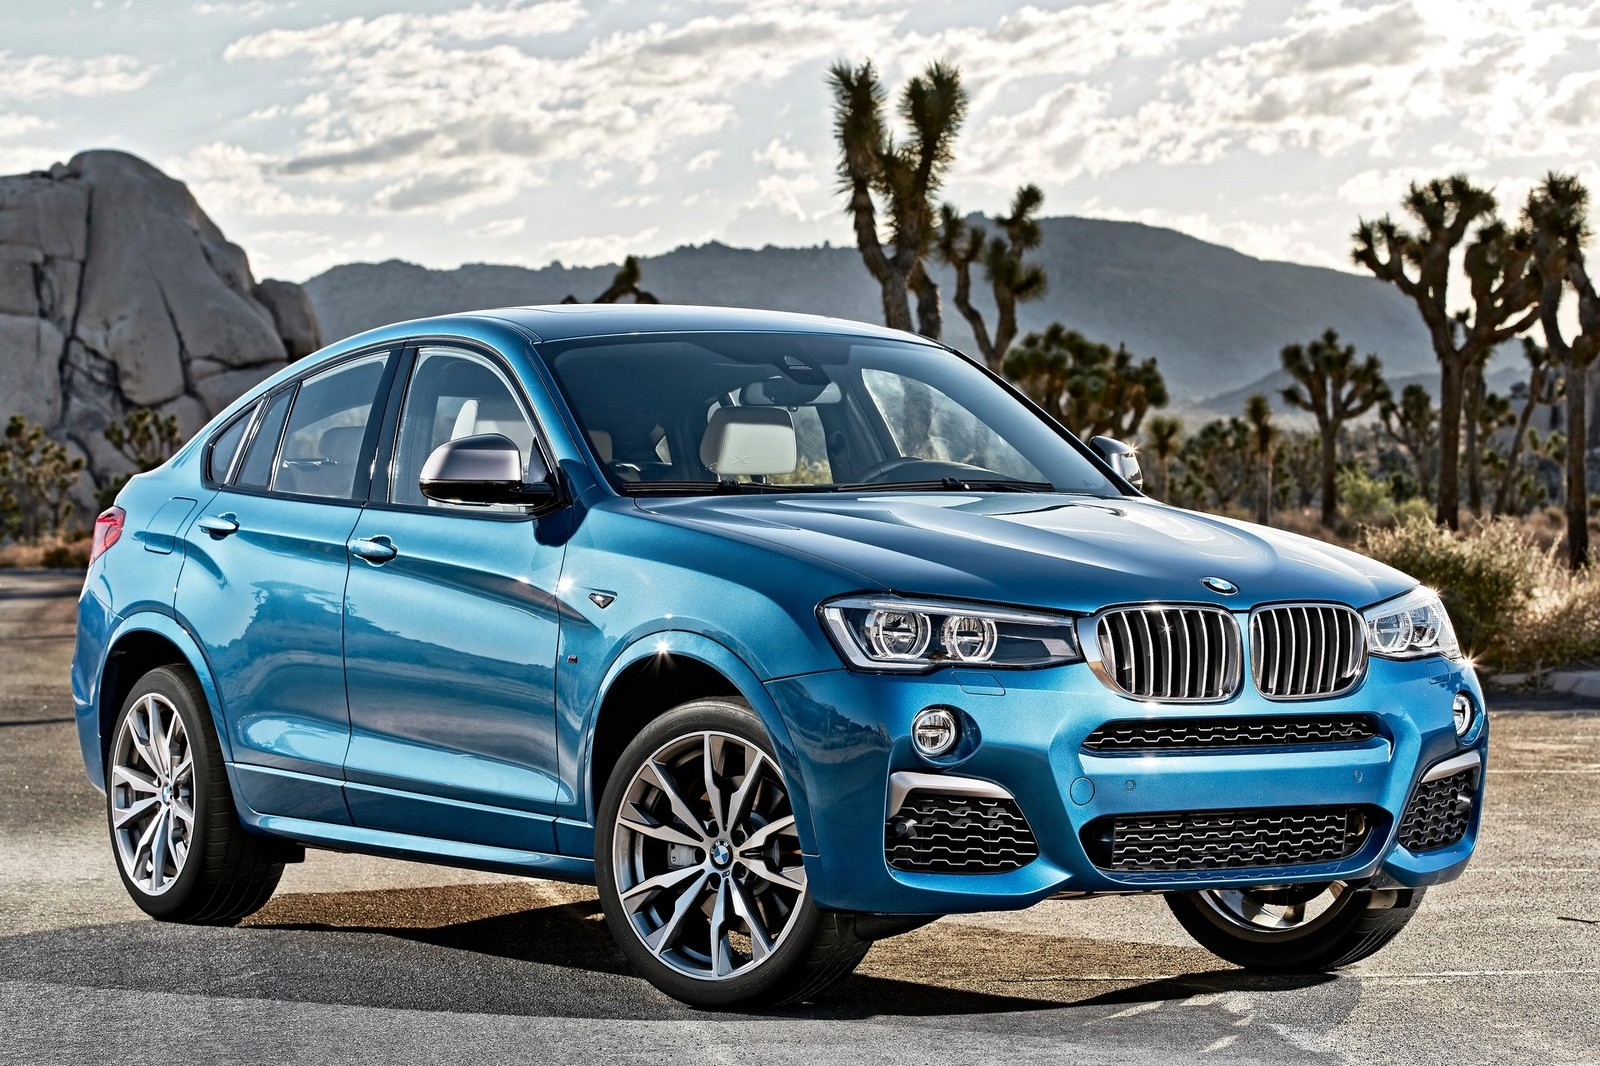 BMW's X4 crossover gets a taste of the brand's M performance pedigree in the M40i.